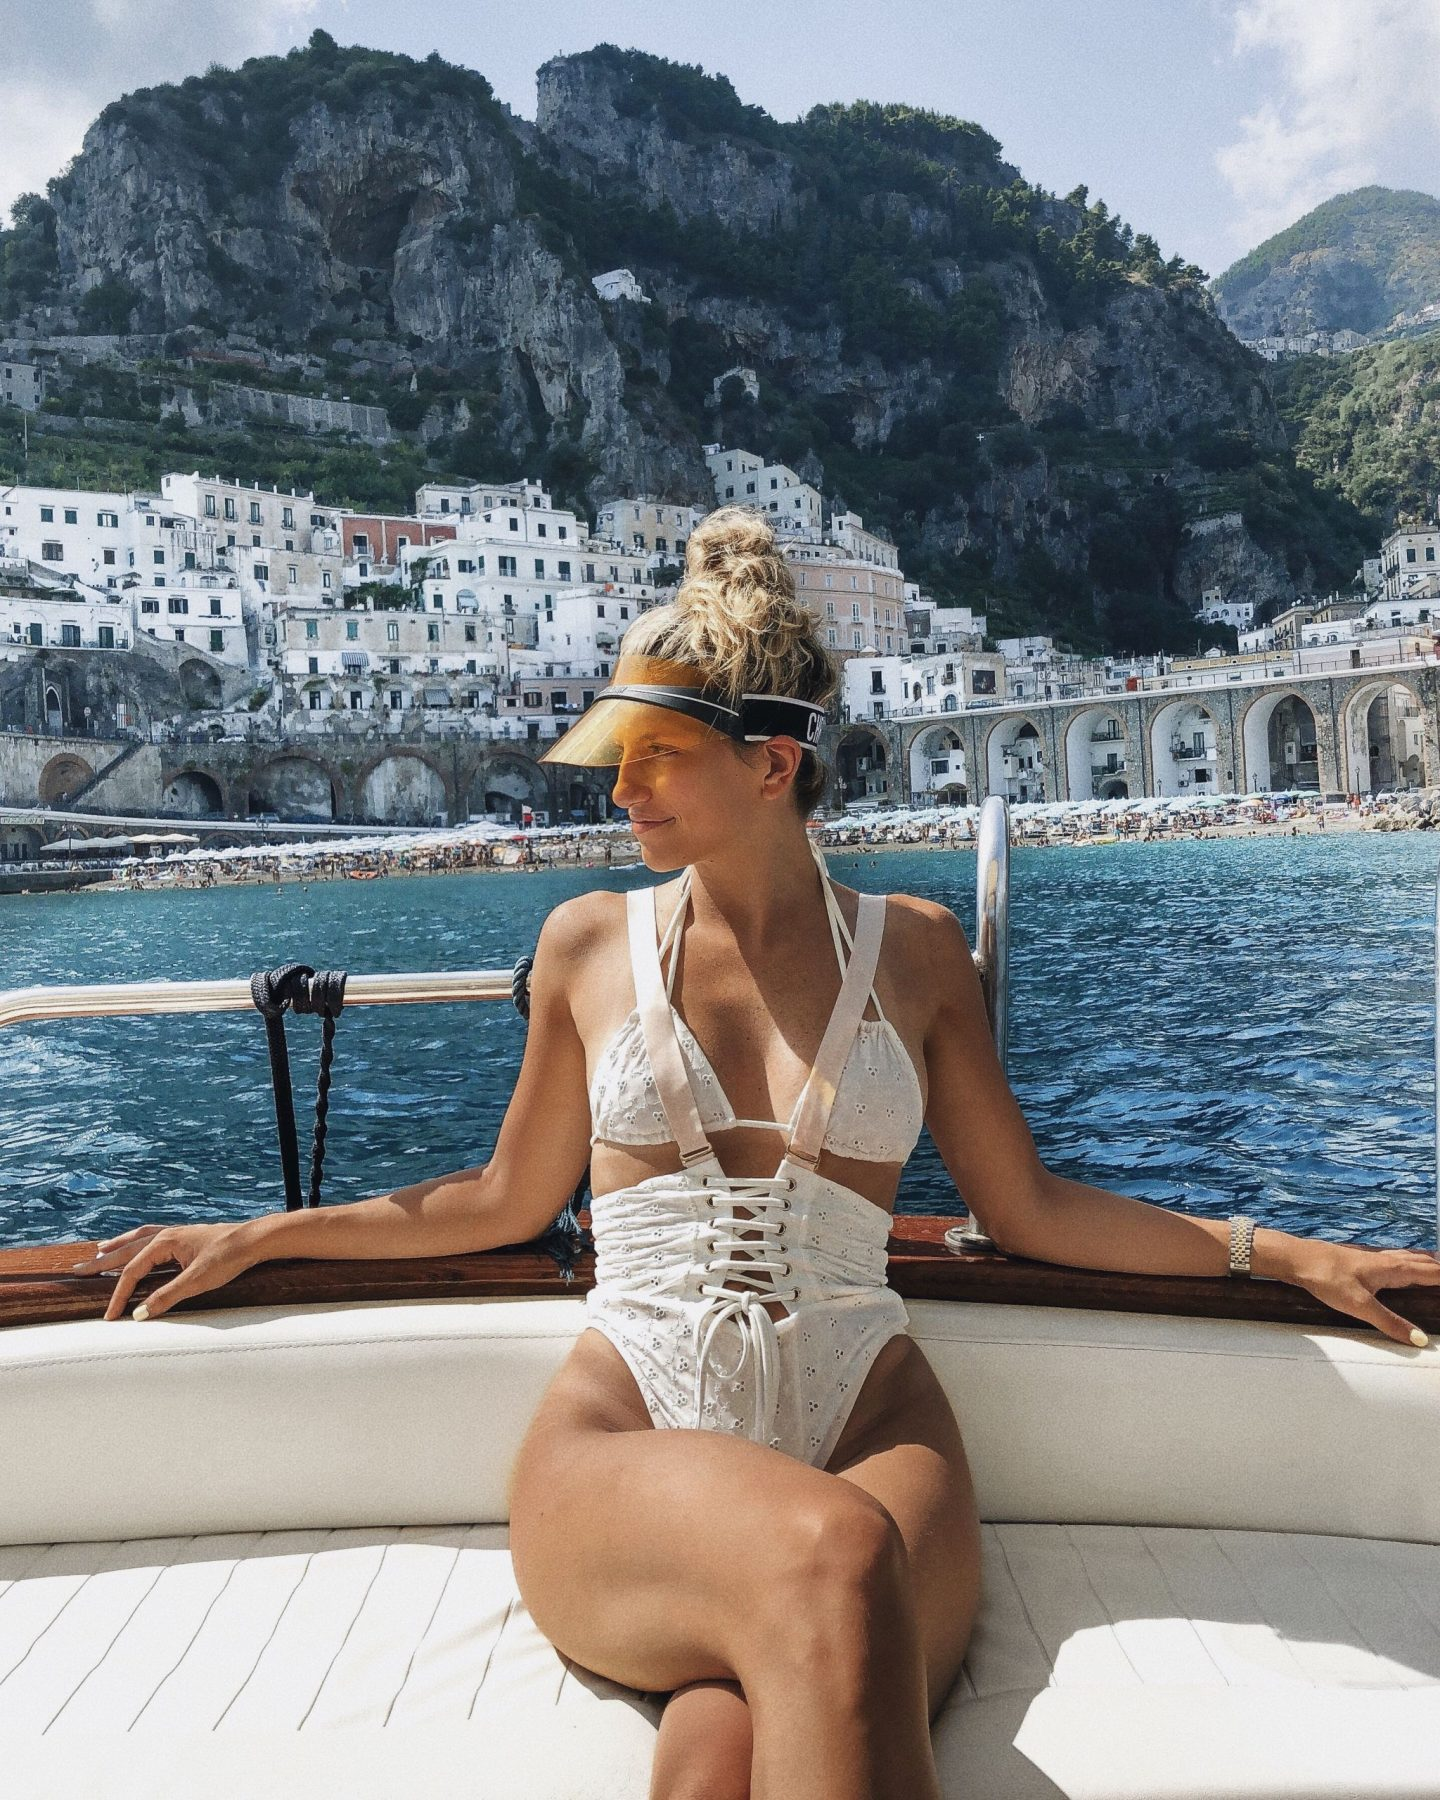 Cassandra DiMicco, Cass DiMicco, Dressed For Dreams, NYC, New York City, New York, Street Style NYC, Street Style 2018, NYC Street Style Street Style Outfits, 2018 Trends, Summer Style, Summer Outfit Inspo, Europe Outfit Inspo, NYC Fashion Blogger, Positano, Amalfi Coast, Positano Italy, Dior Visor, Lace Up Monokini, Yacht Outfit, Boat Outfit, Positano Outfit Inspo